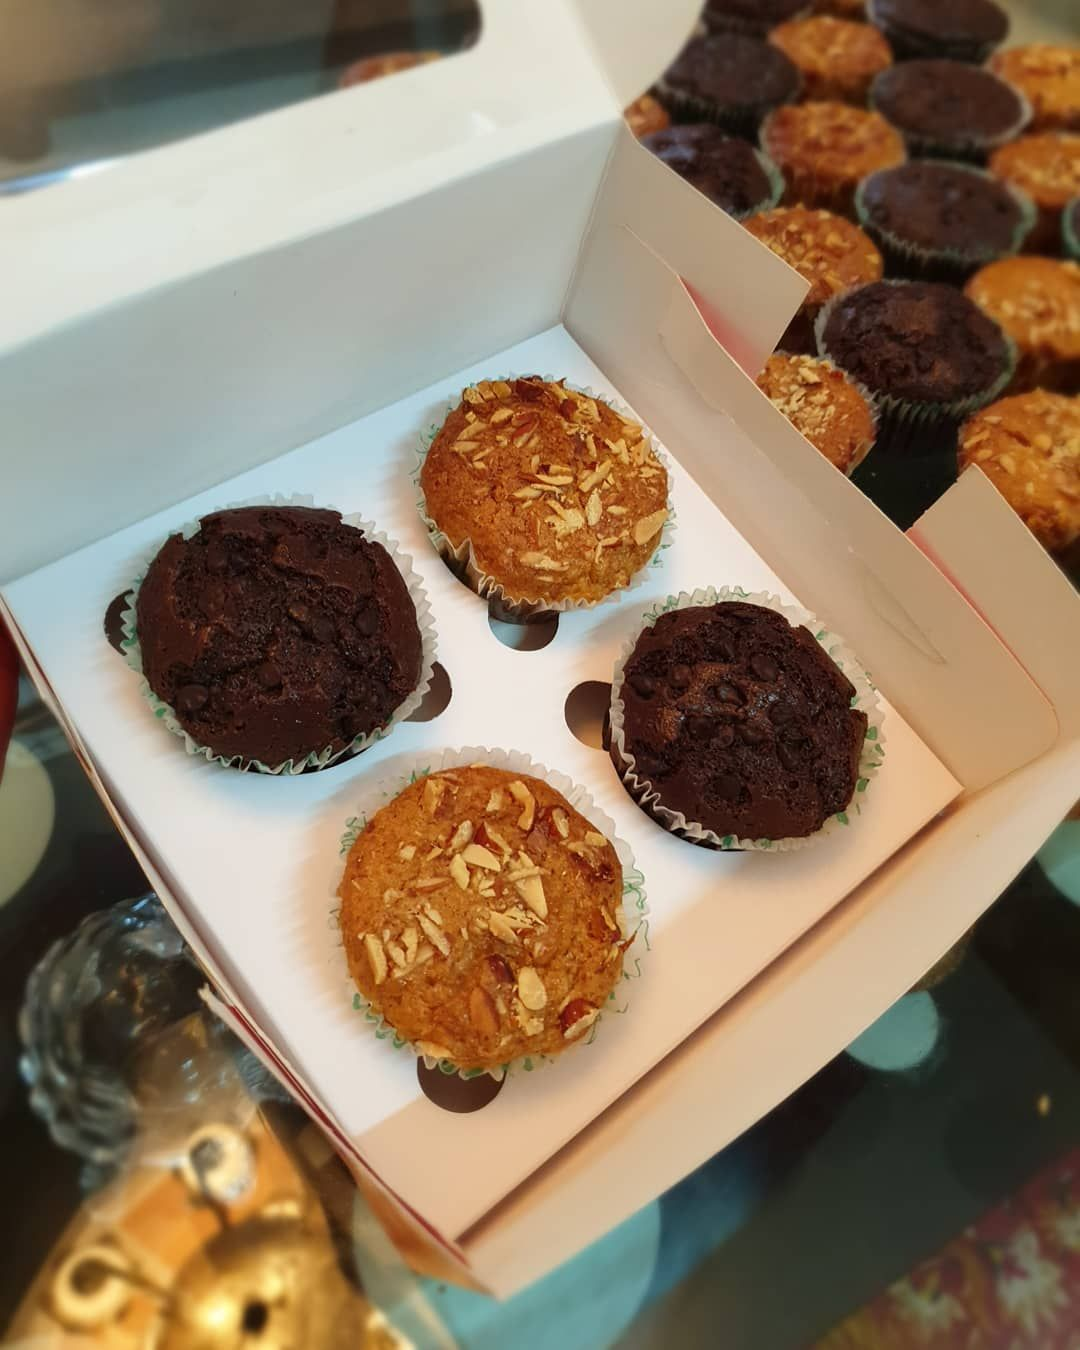 Almond and chocochip muffins! . Get your cakes and cupcakes customised by us. 💕 TheCakeArt making every occasion special! WhatsApp for orders.